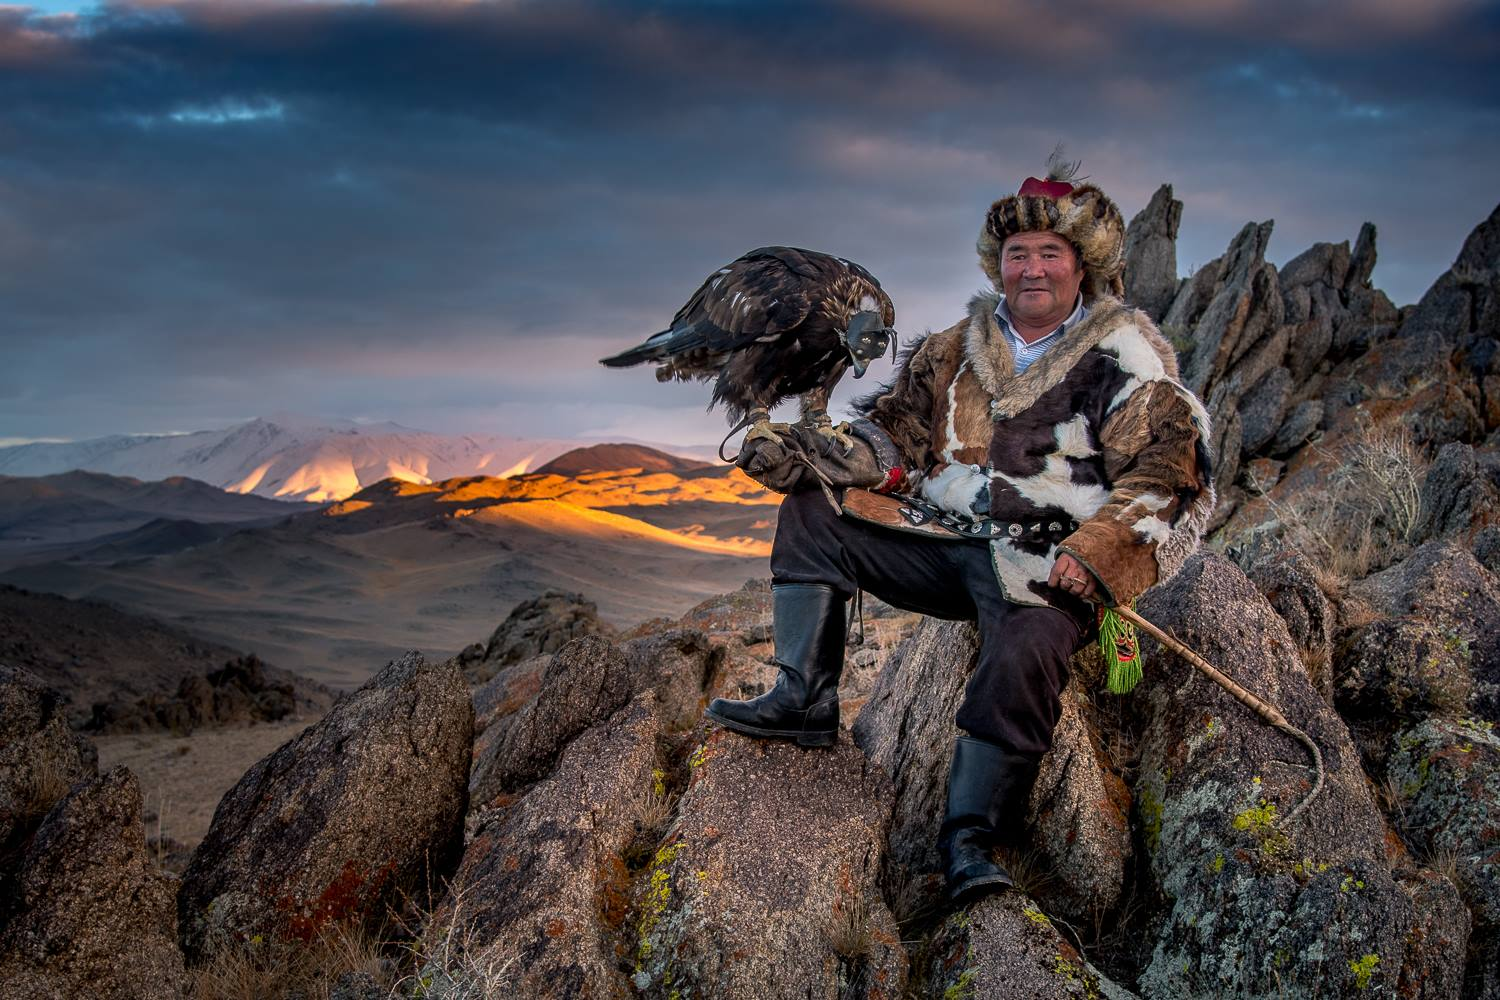 Kazakh eagle hunter and eagle sitting in the mountains